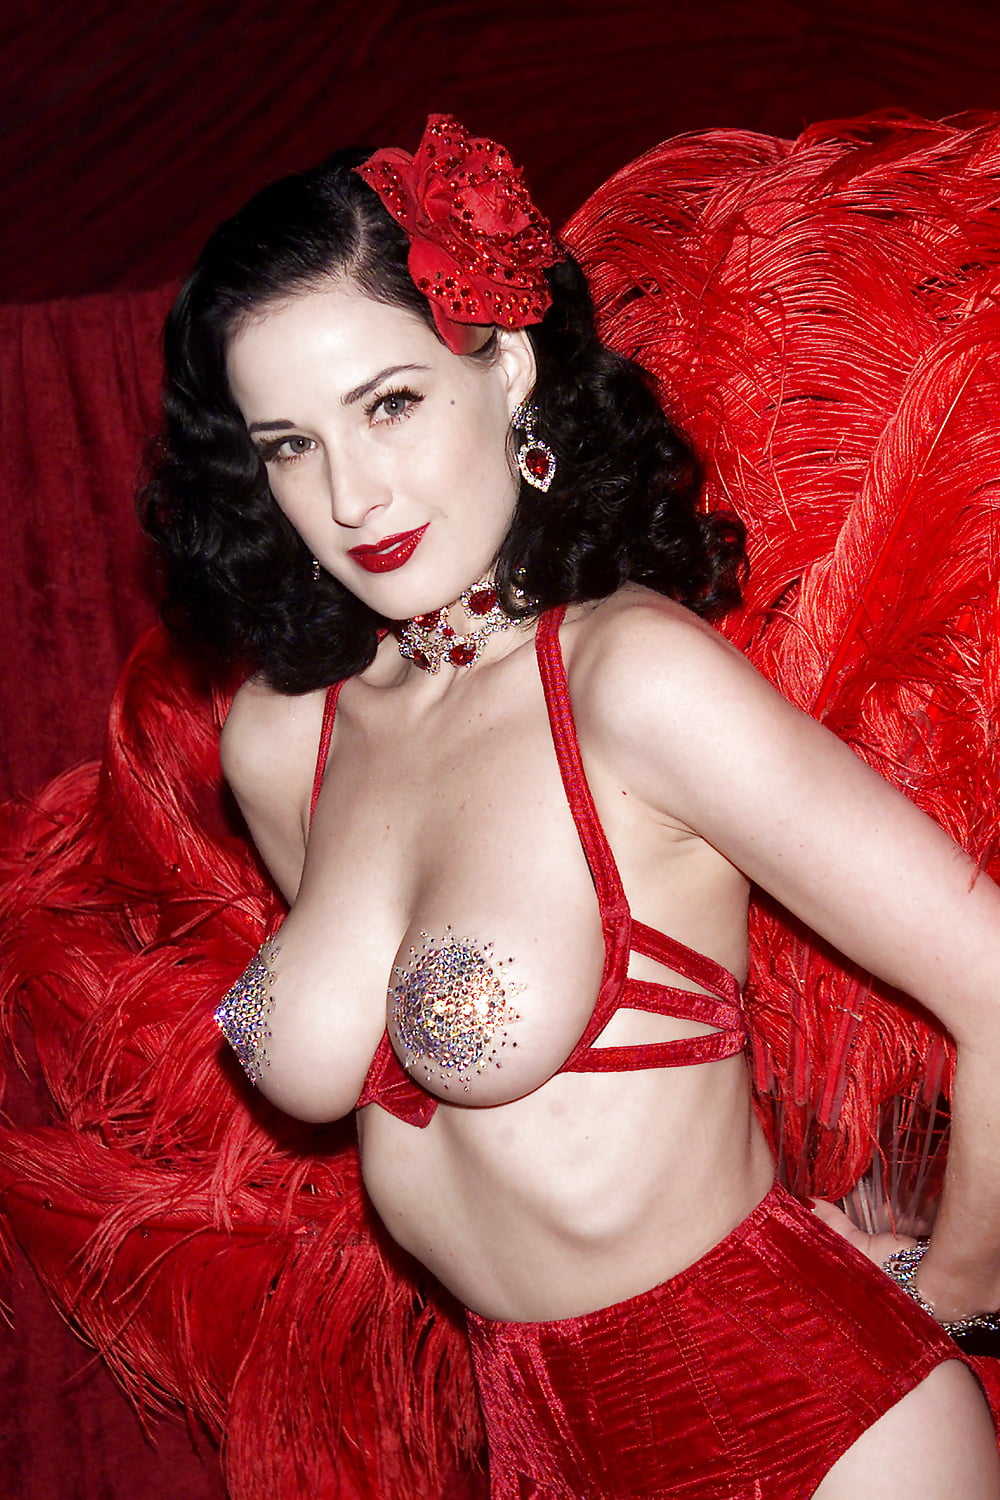 Dita von teese explains why its important to have mature women who are comfortable with sensuality